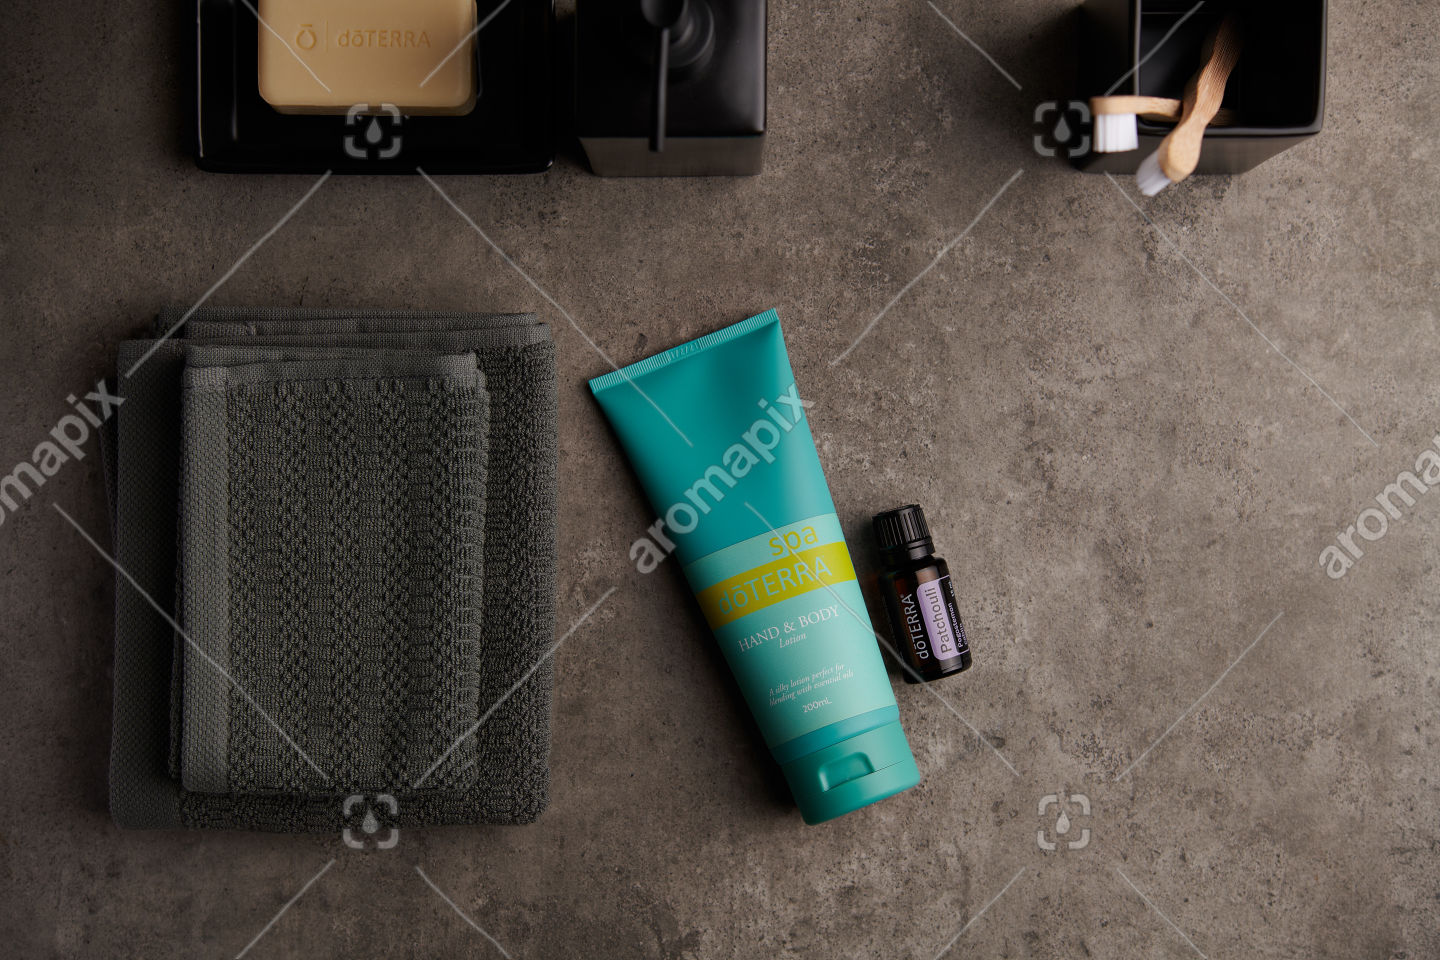 doTERRA Spa Hand and Body Lotion and Patchouli essential oil on stone